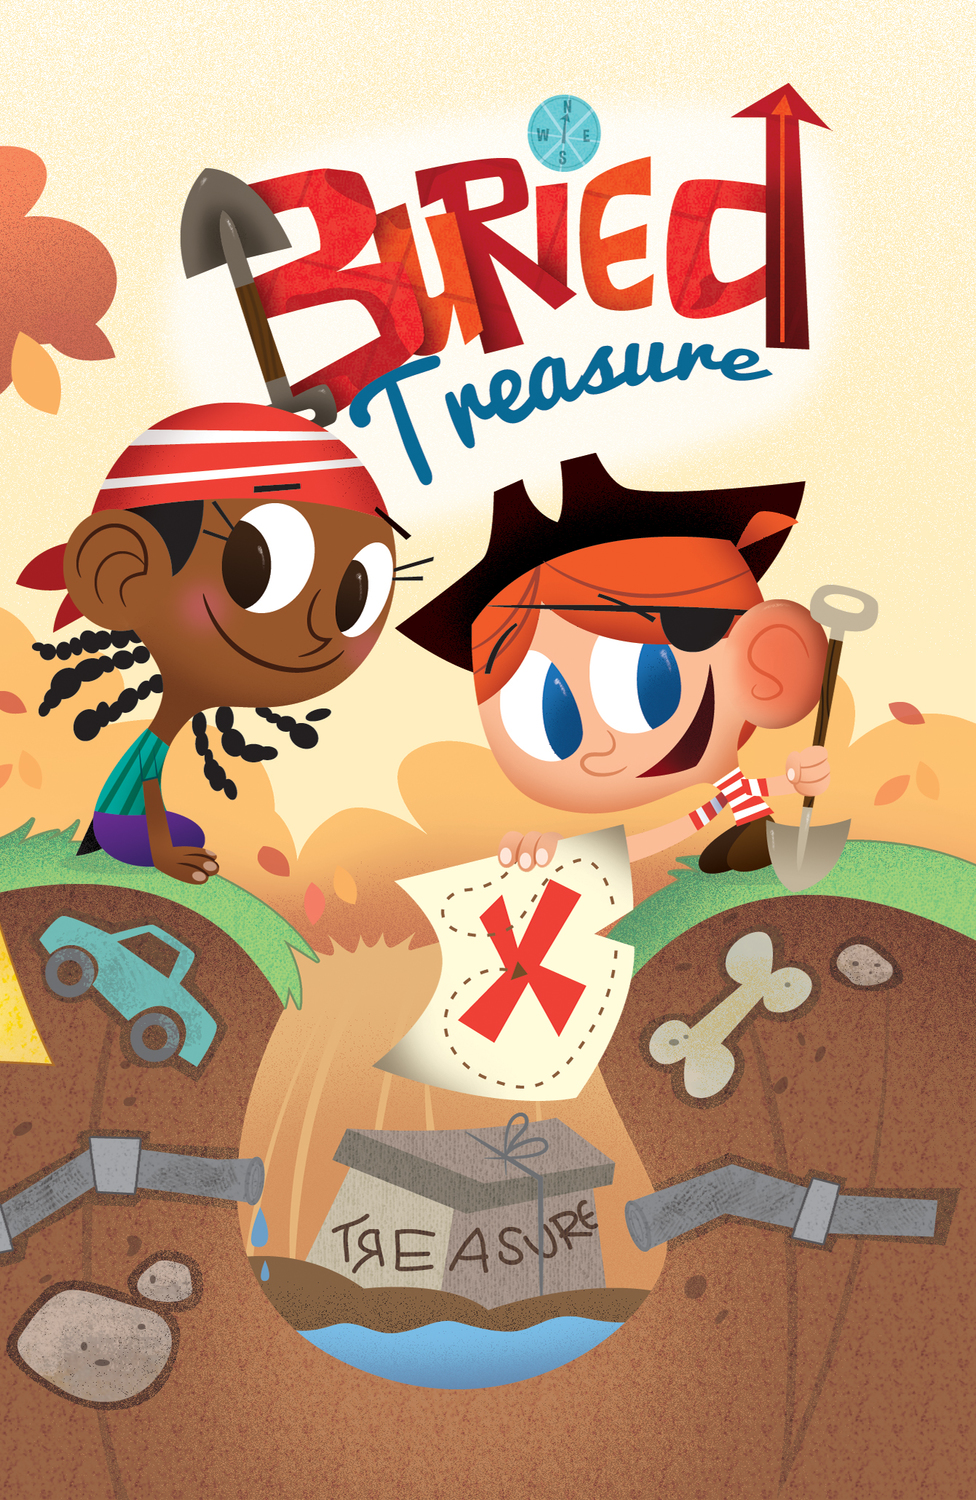 Buried Treasure (ATS)